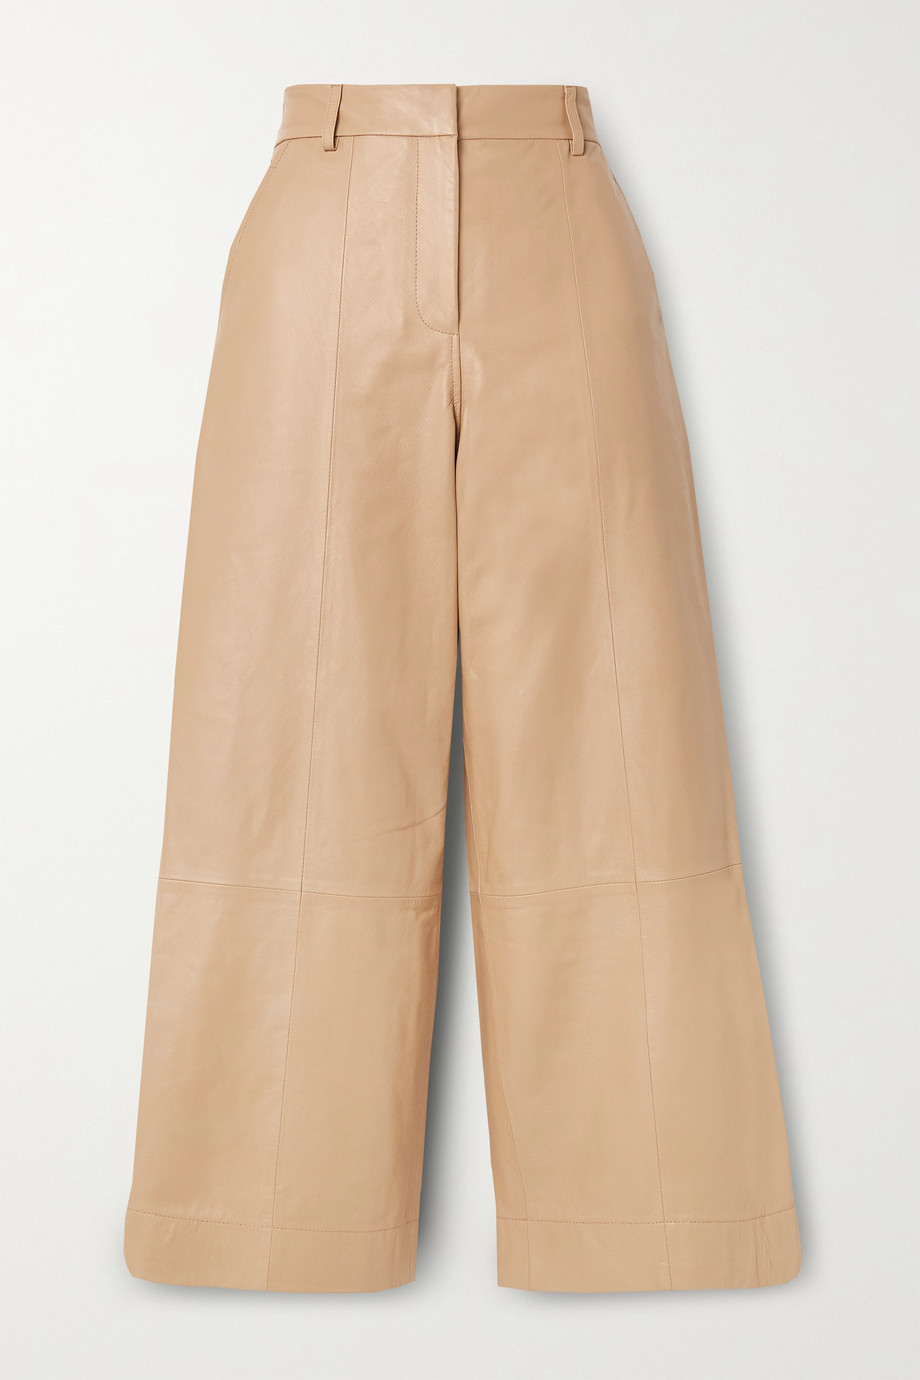 Jason Wu Leather culottes